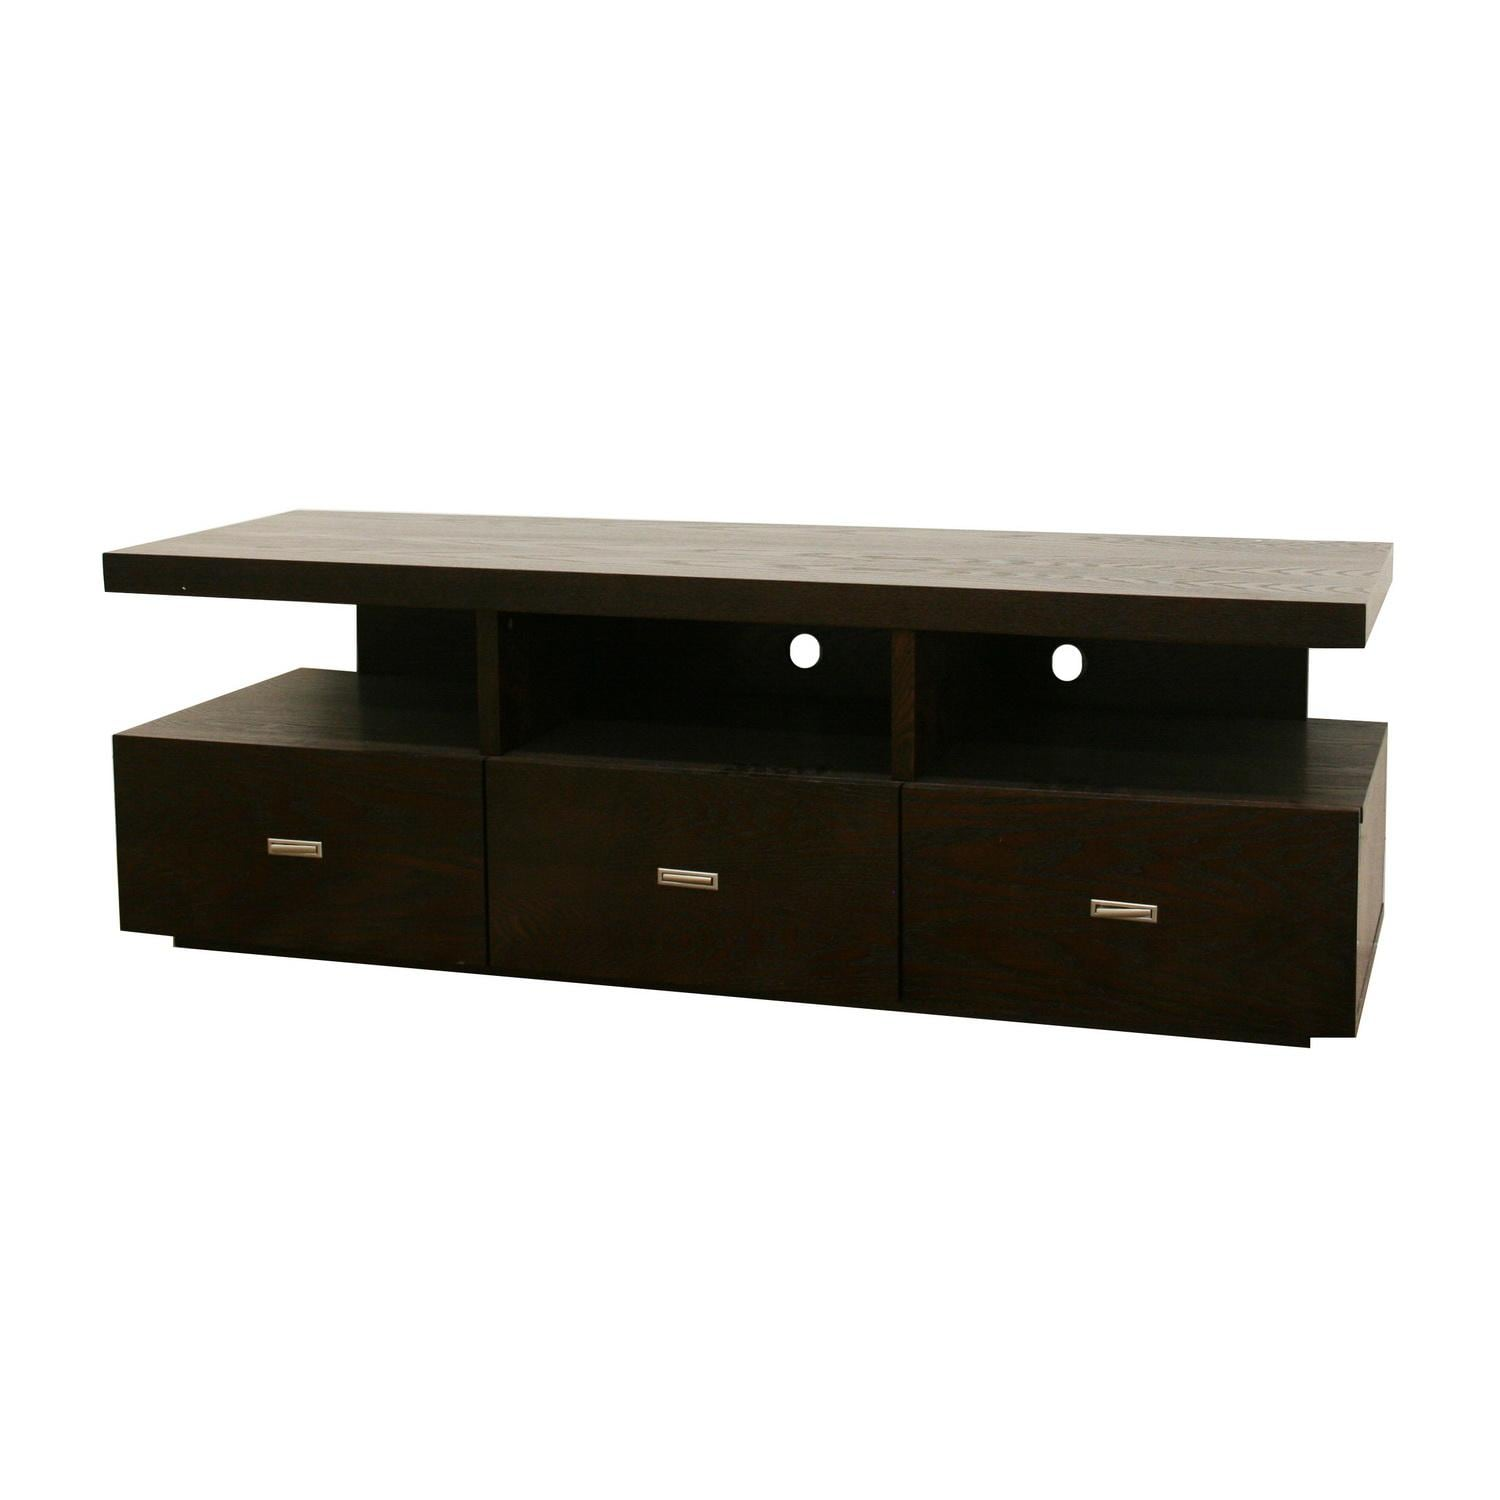 Nardo Dark Brown Wood Modern Tv Stand Free Shipping Today 5548997